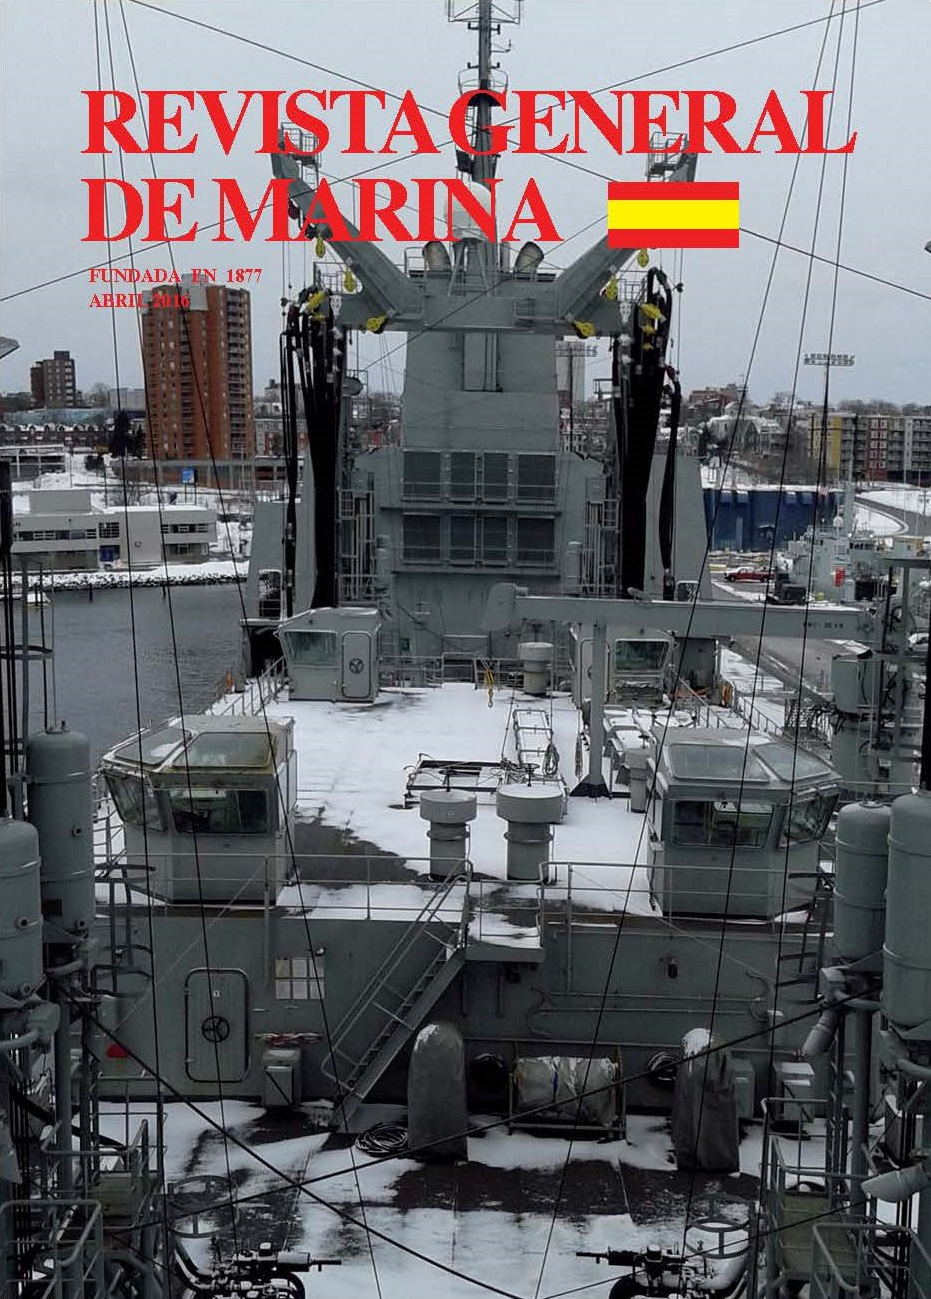 Revista General de Marina Abril 2016